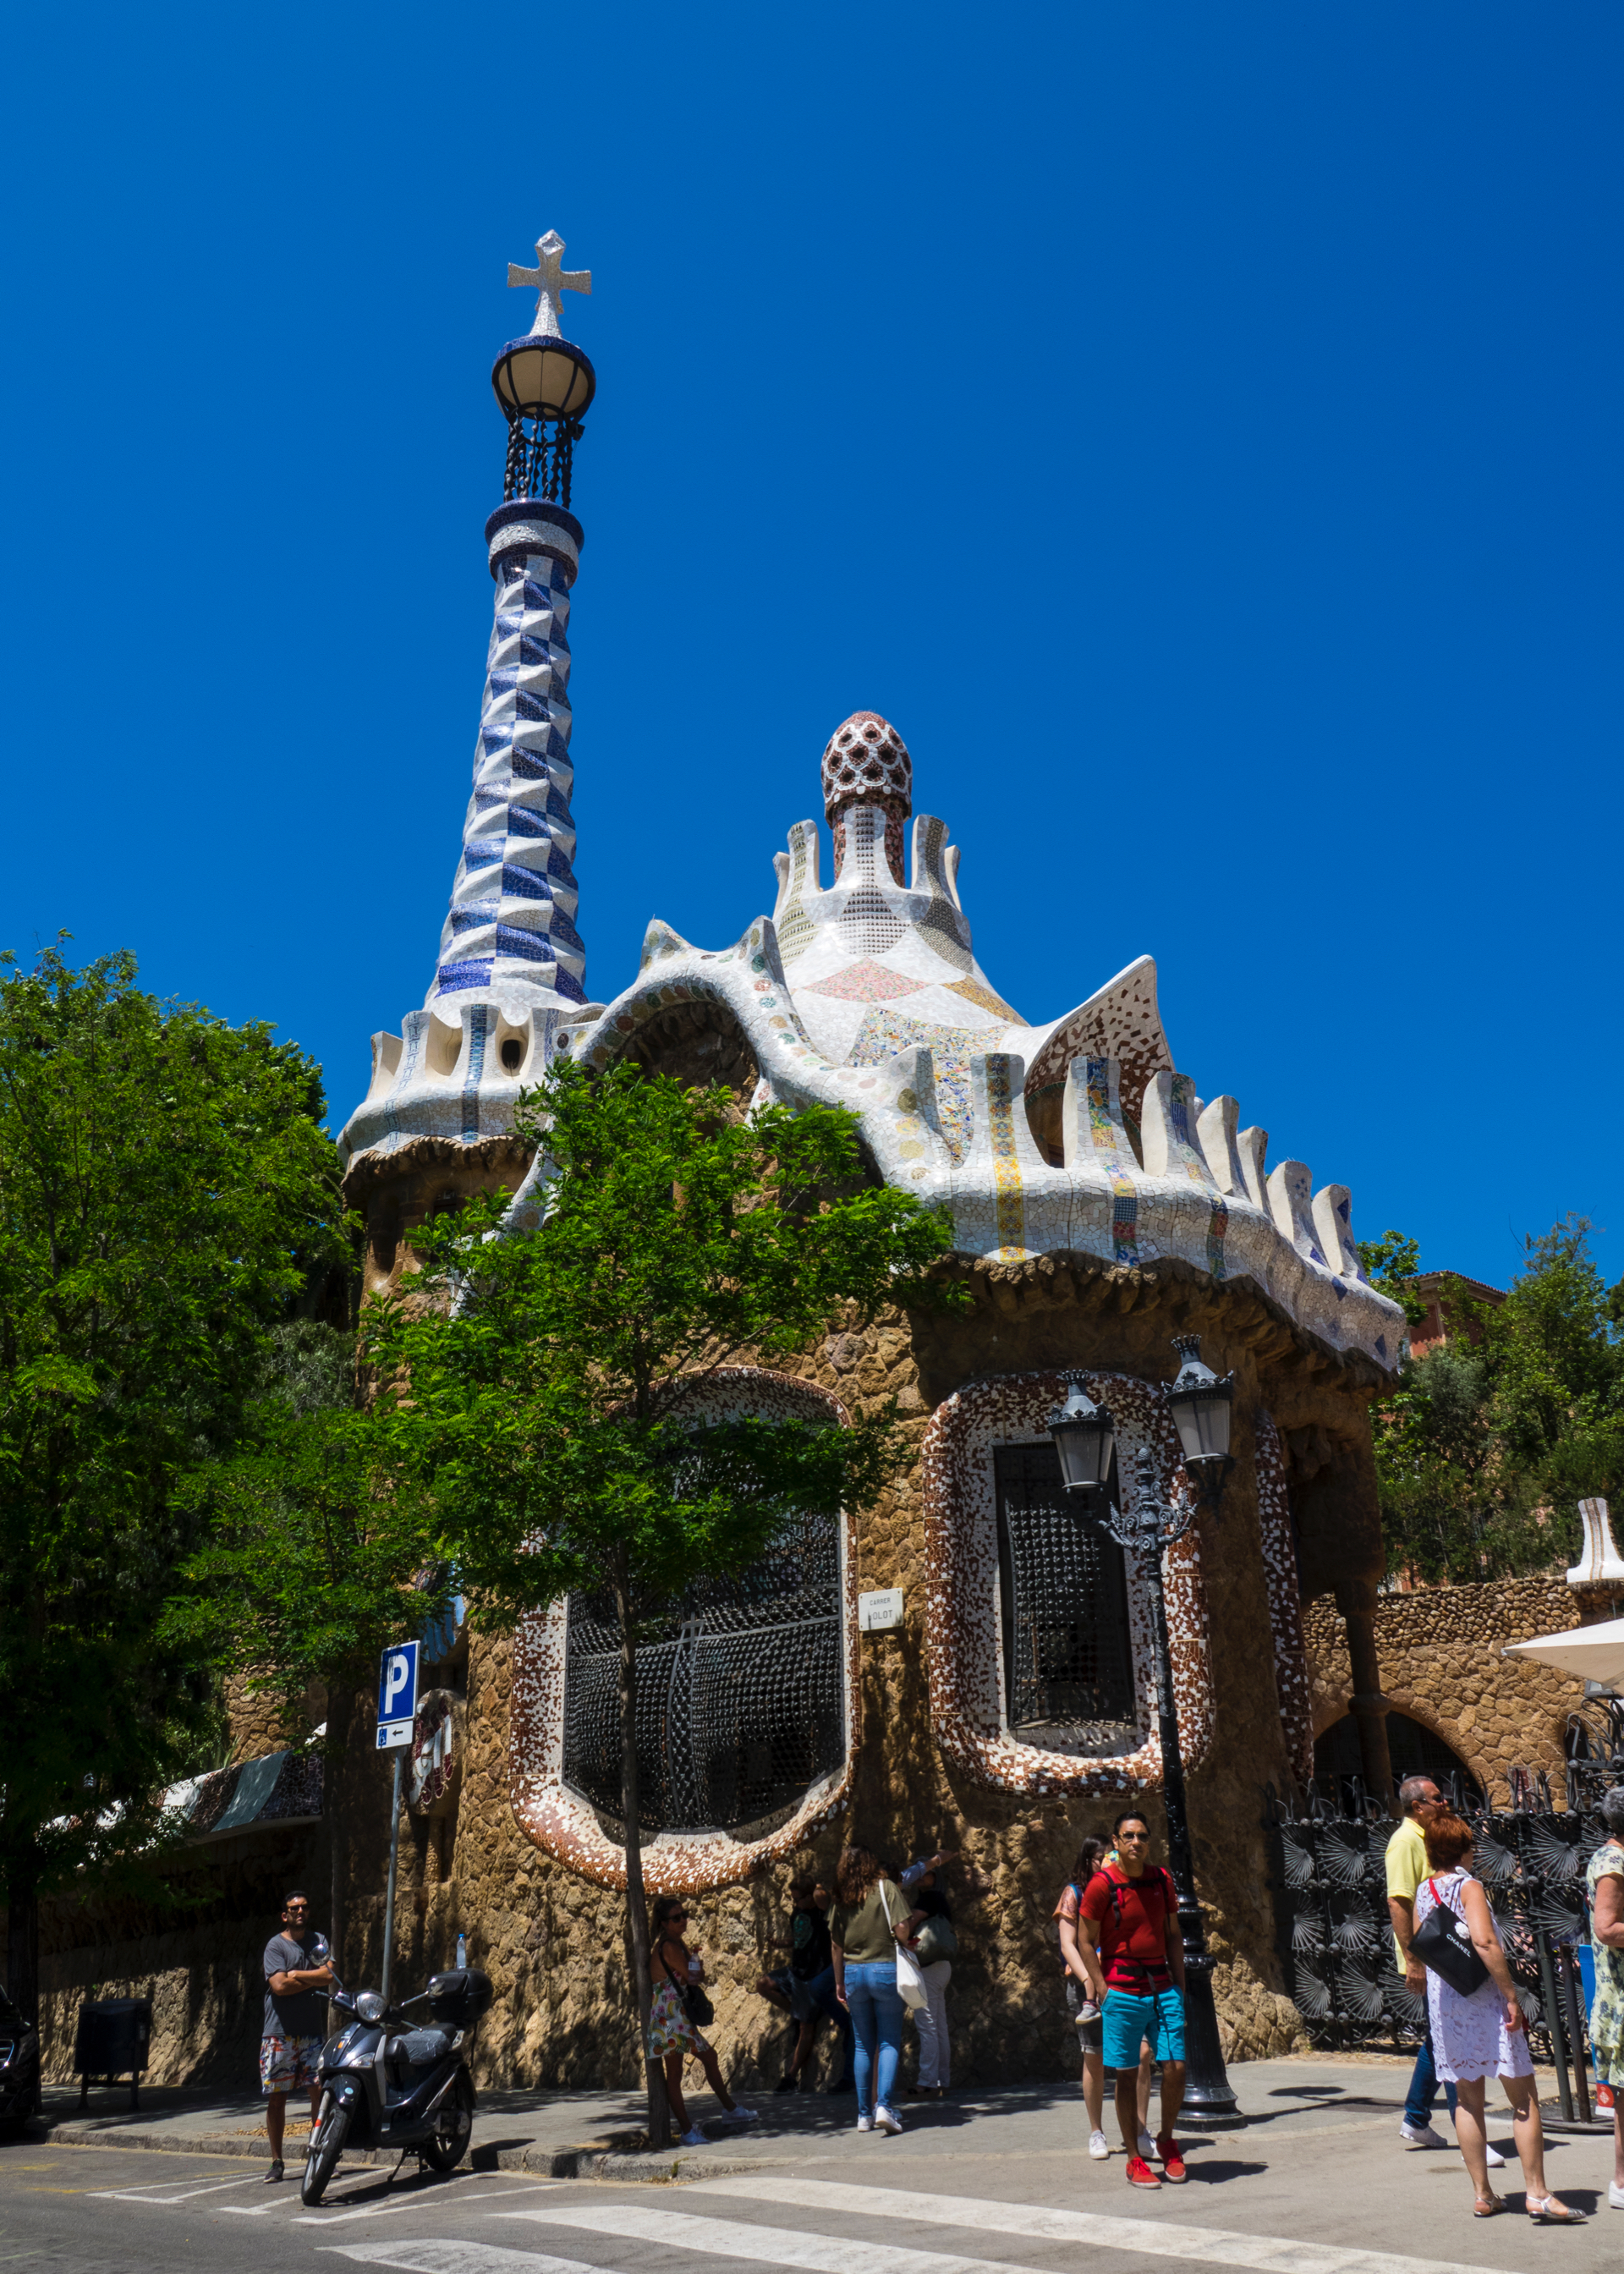 One of the fantastical entrances for the Park Guell.